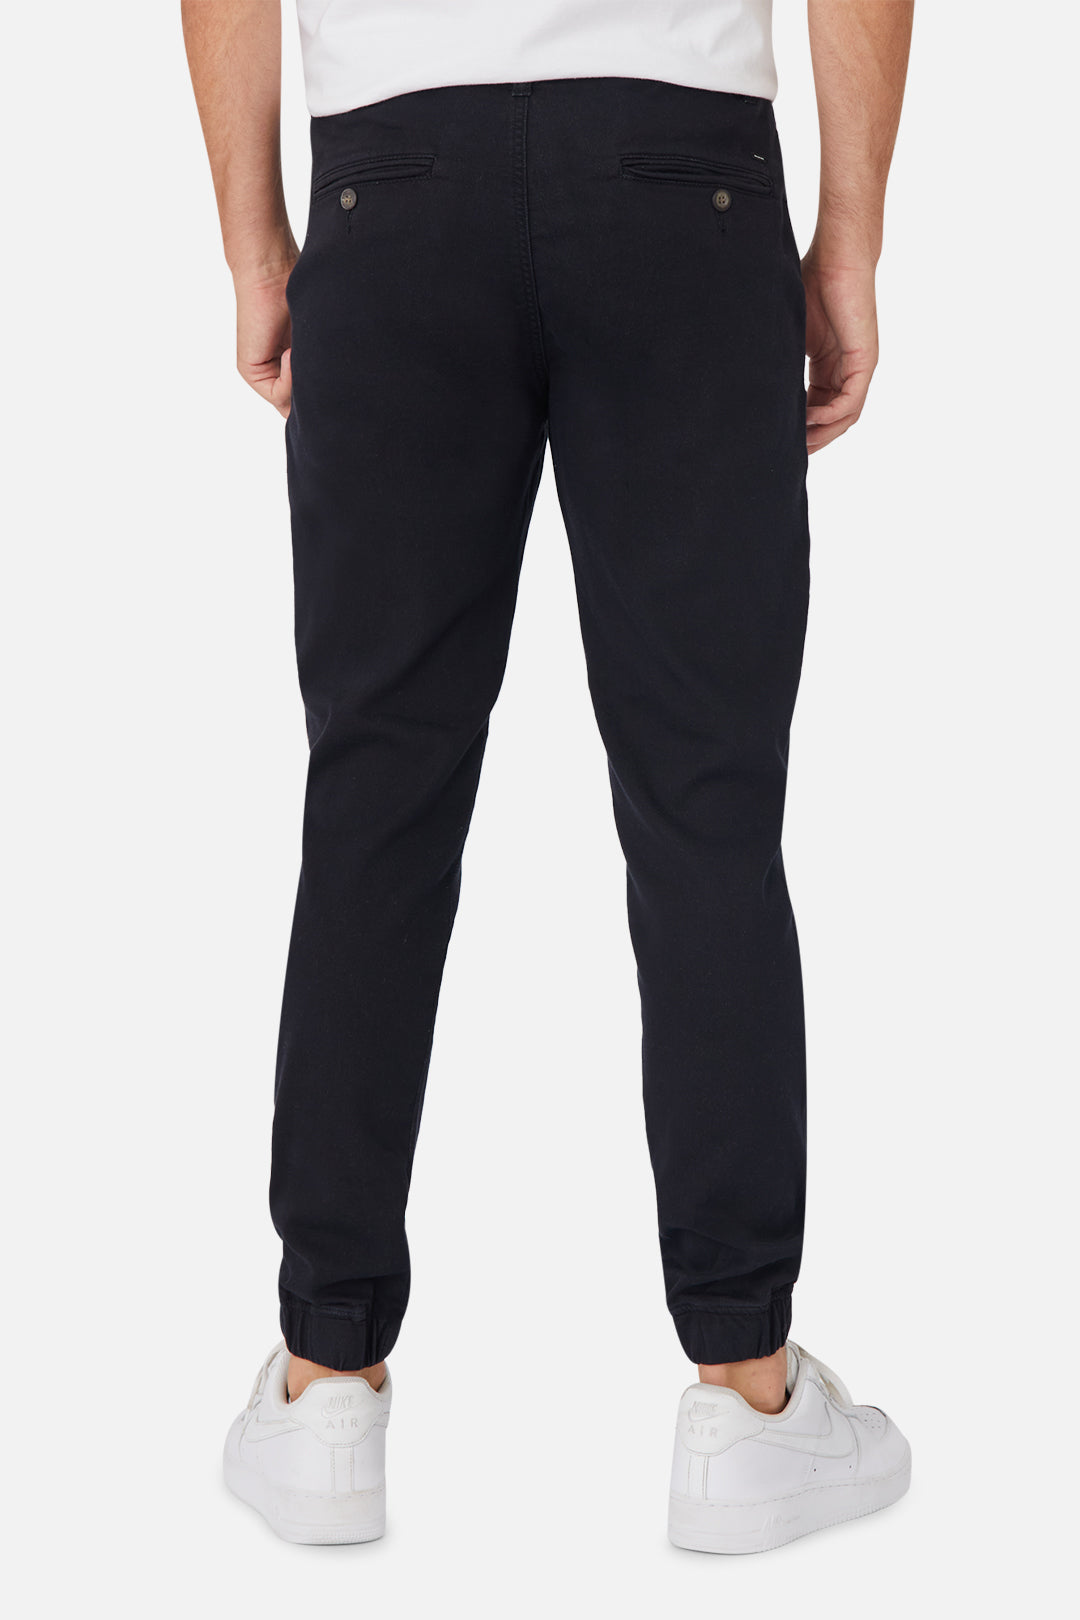 The Drifter Chino Pant - Raw